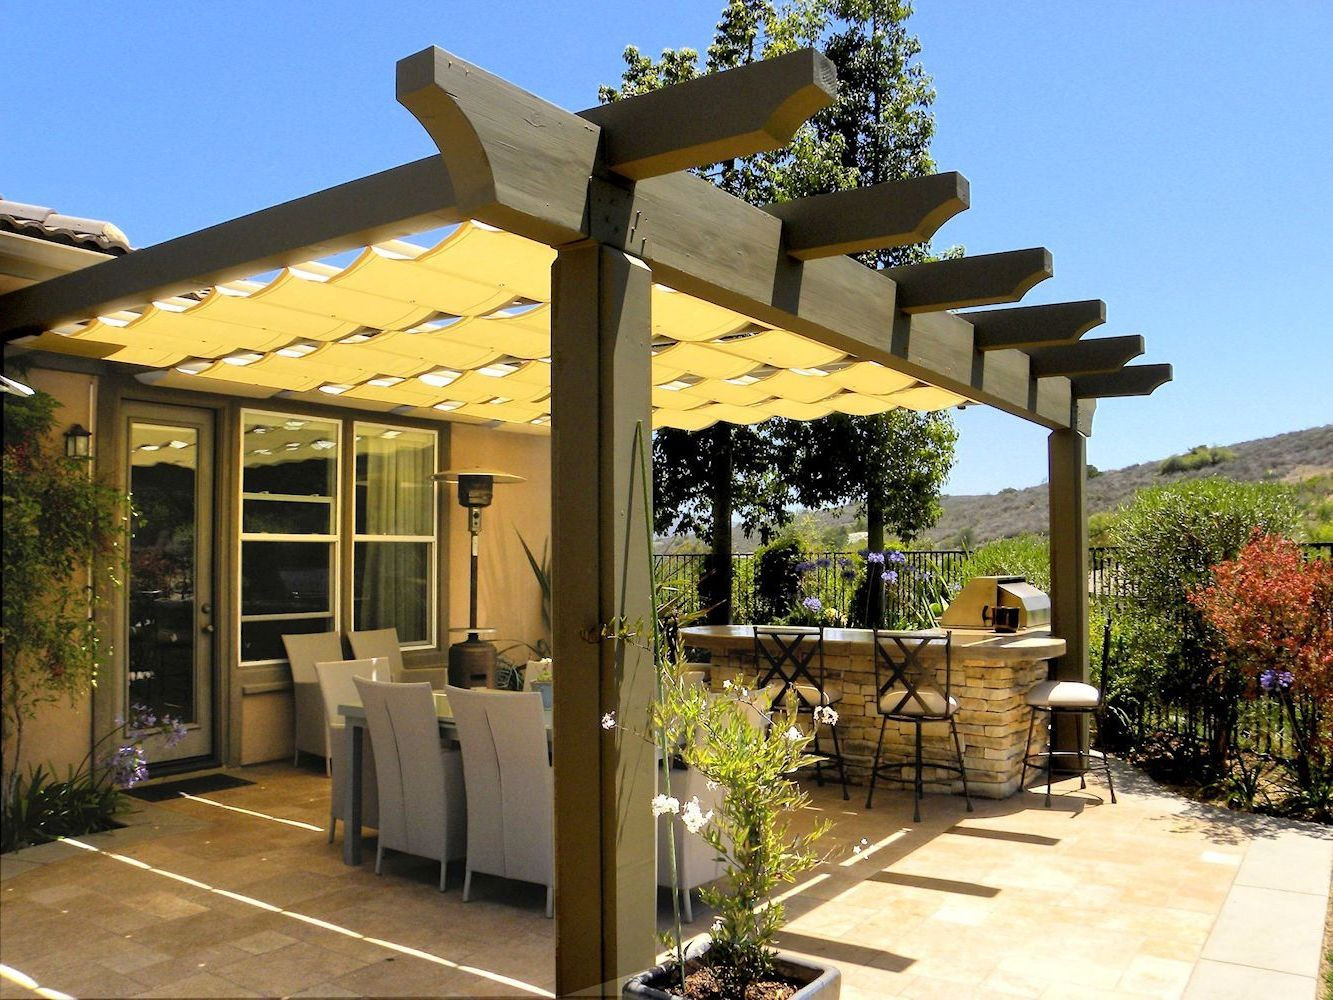 Best ideas about Cheap Patio Cover Ideas . Save or Pin Clever Ways to Create Cheap Patio Cover Ideas Home Now.